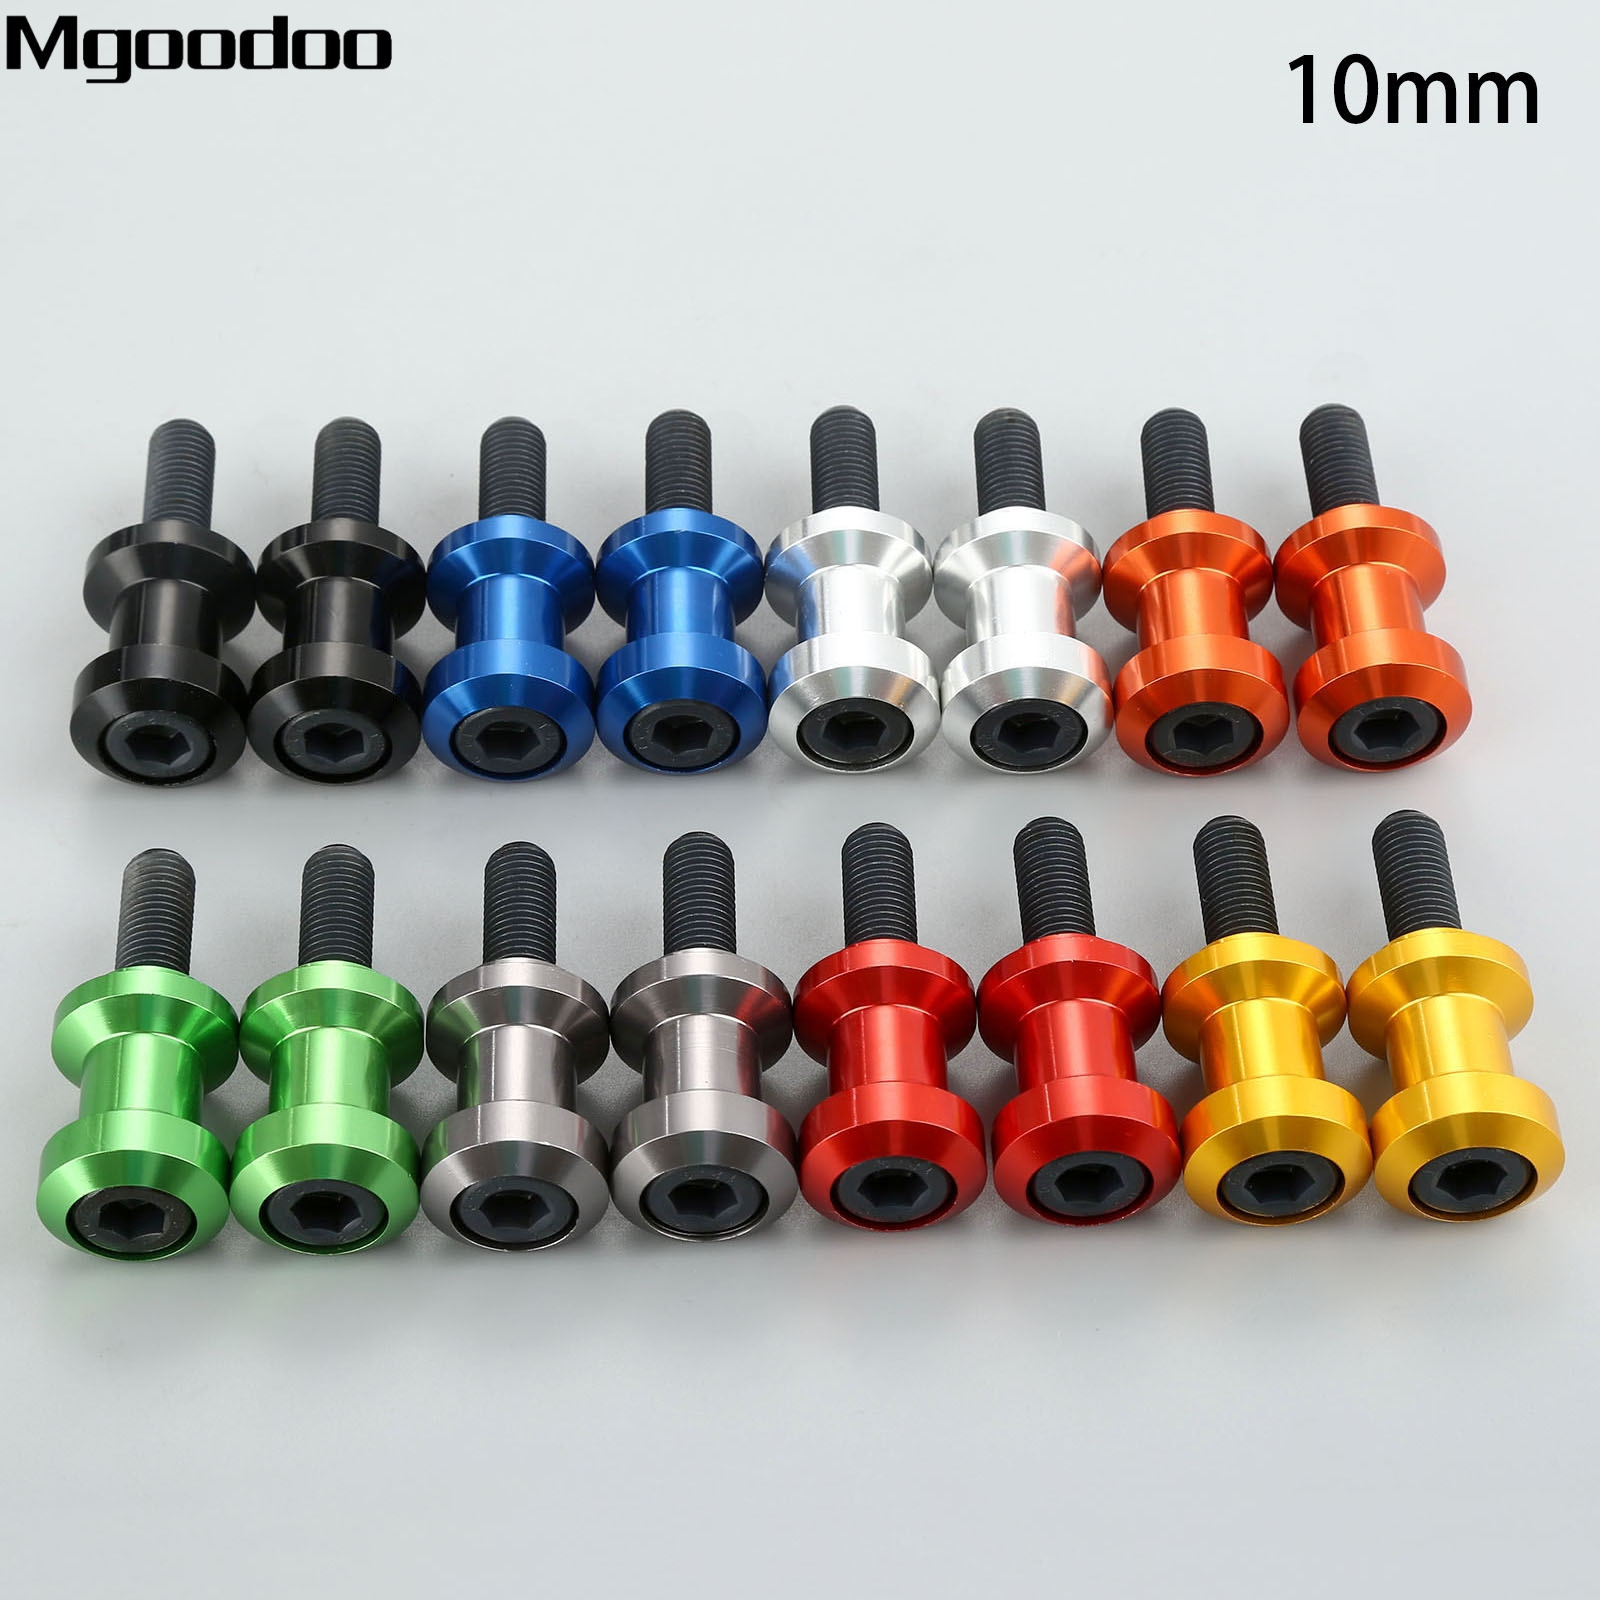 Mgoodoo CNC Aluminium 10mm Motorcycle Swingarm Spools Sliders For Yamaha YZF750/1000 FZR400/600/1000 KTM 690 990 Duke 1190 RC8 roxdia men boots man shoes genuine leather ankle winter snow warm short plush lace up black blue plus size 39 46 rxm1001